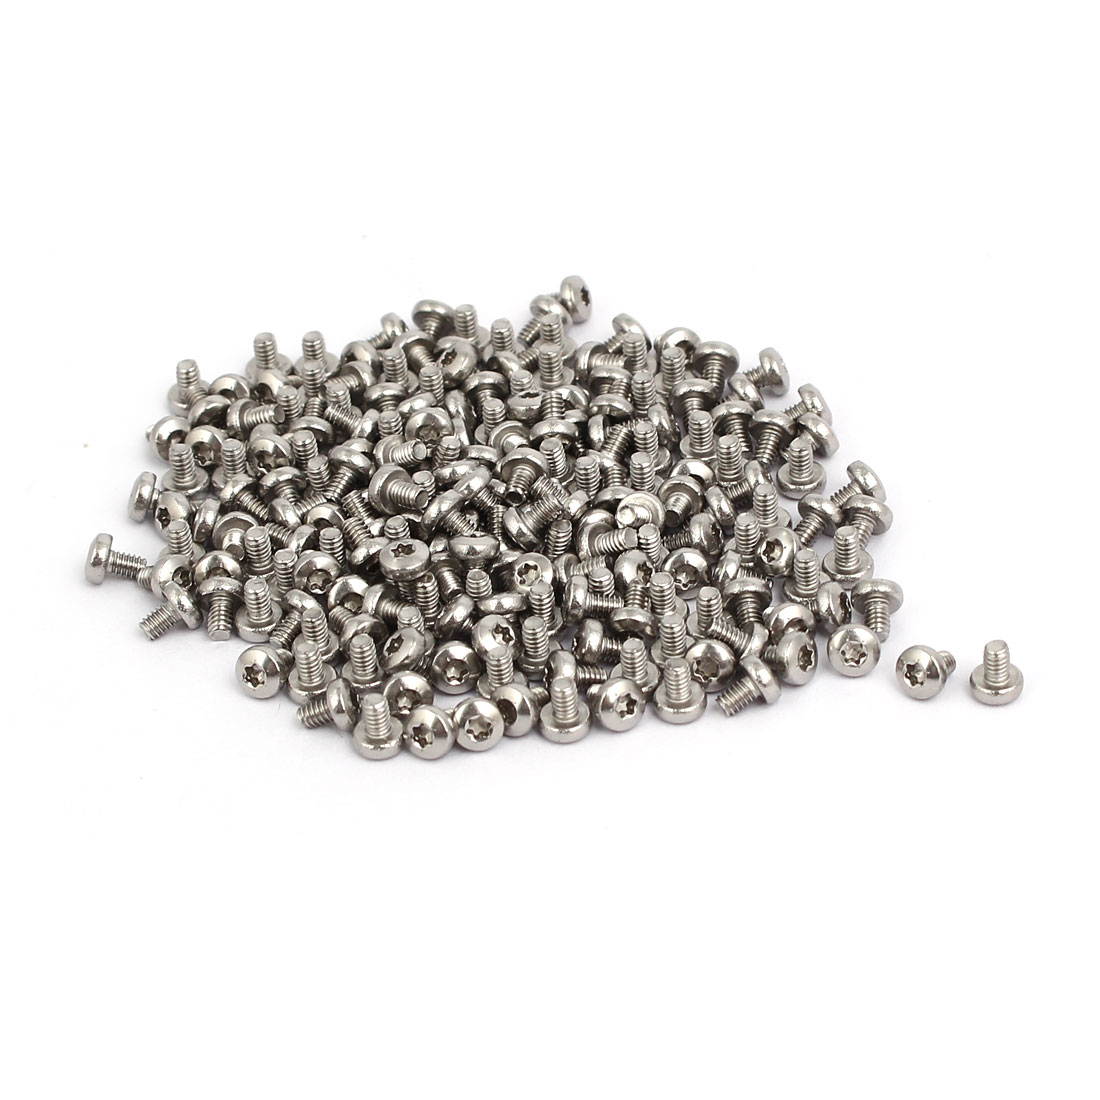 M2x3mm 304 Stainless Steel Button Head Torx Screws Fasteners 200pcs